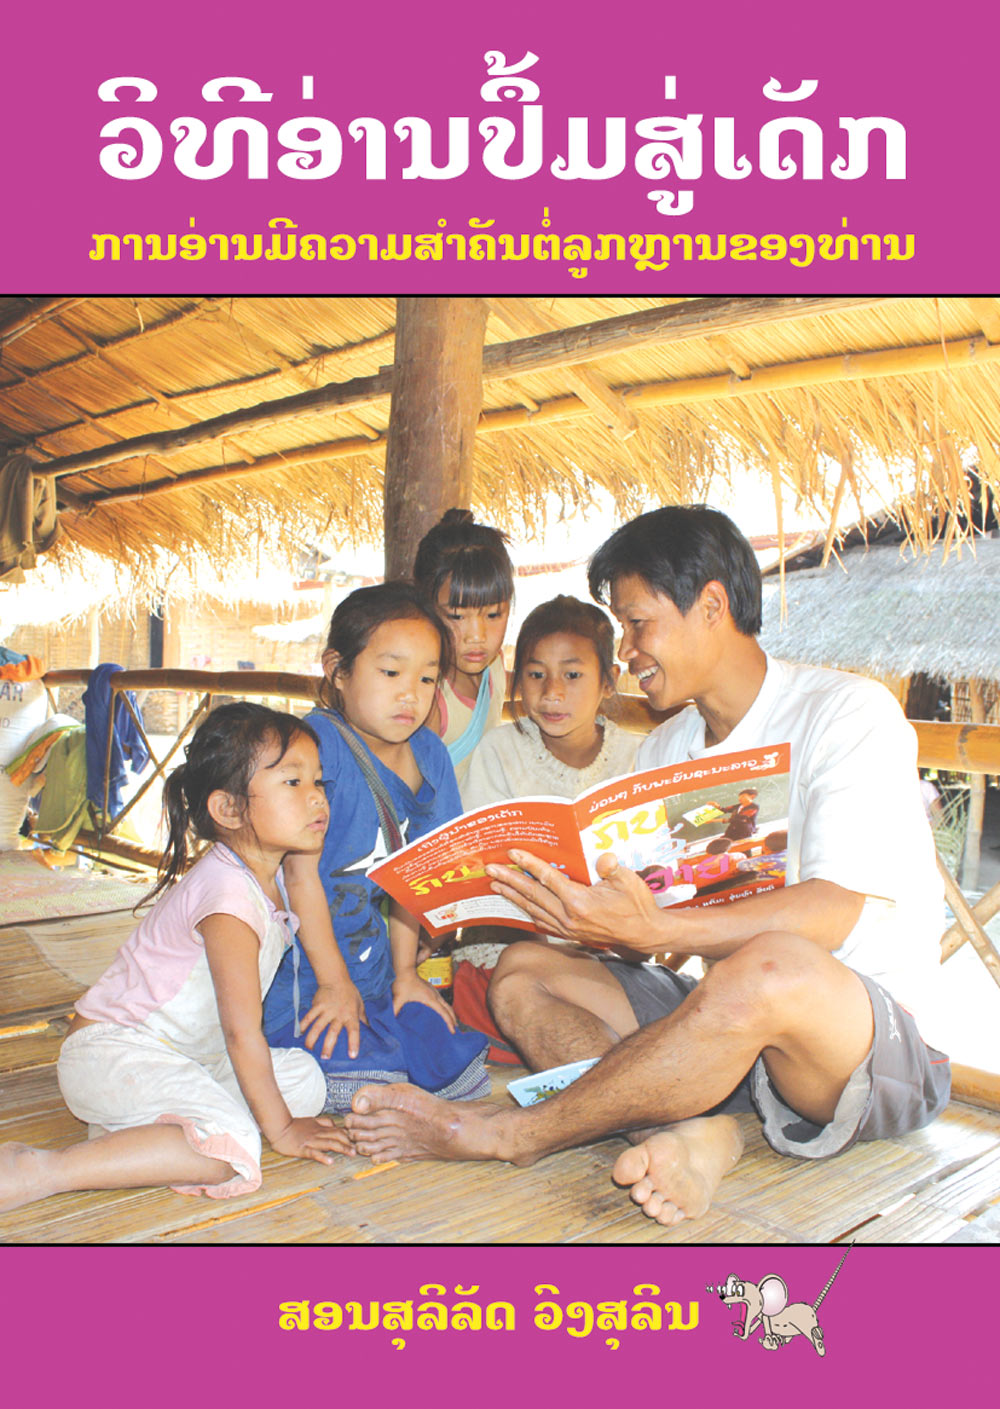 The Joy of Reading large book cover, published in Lao language